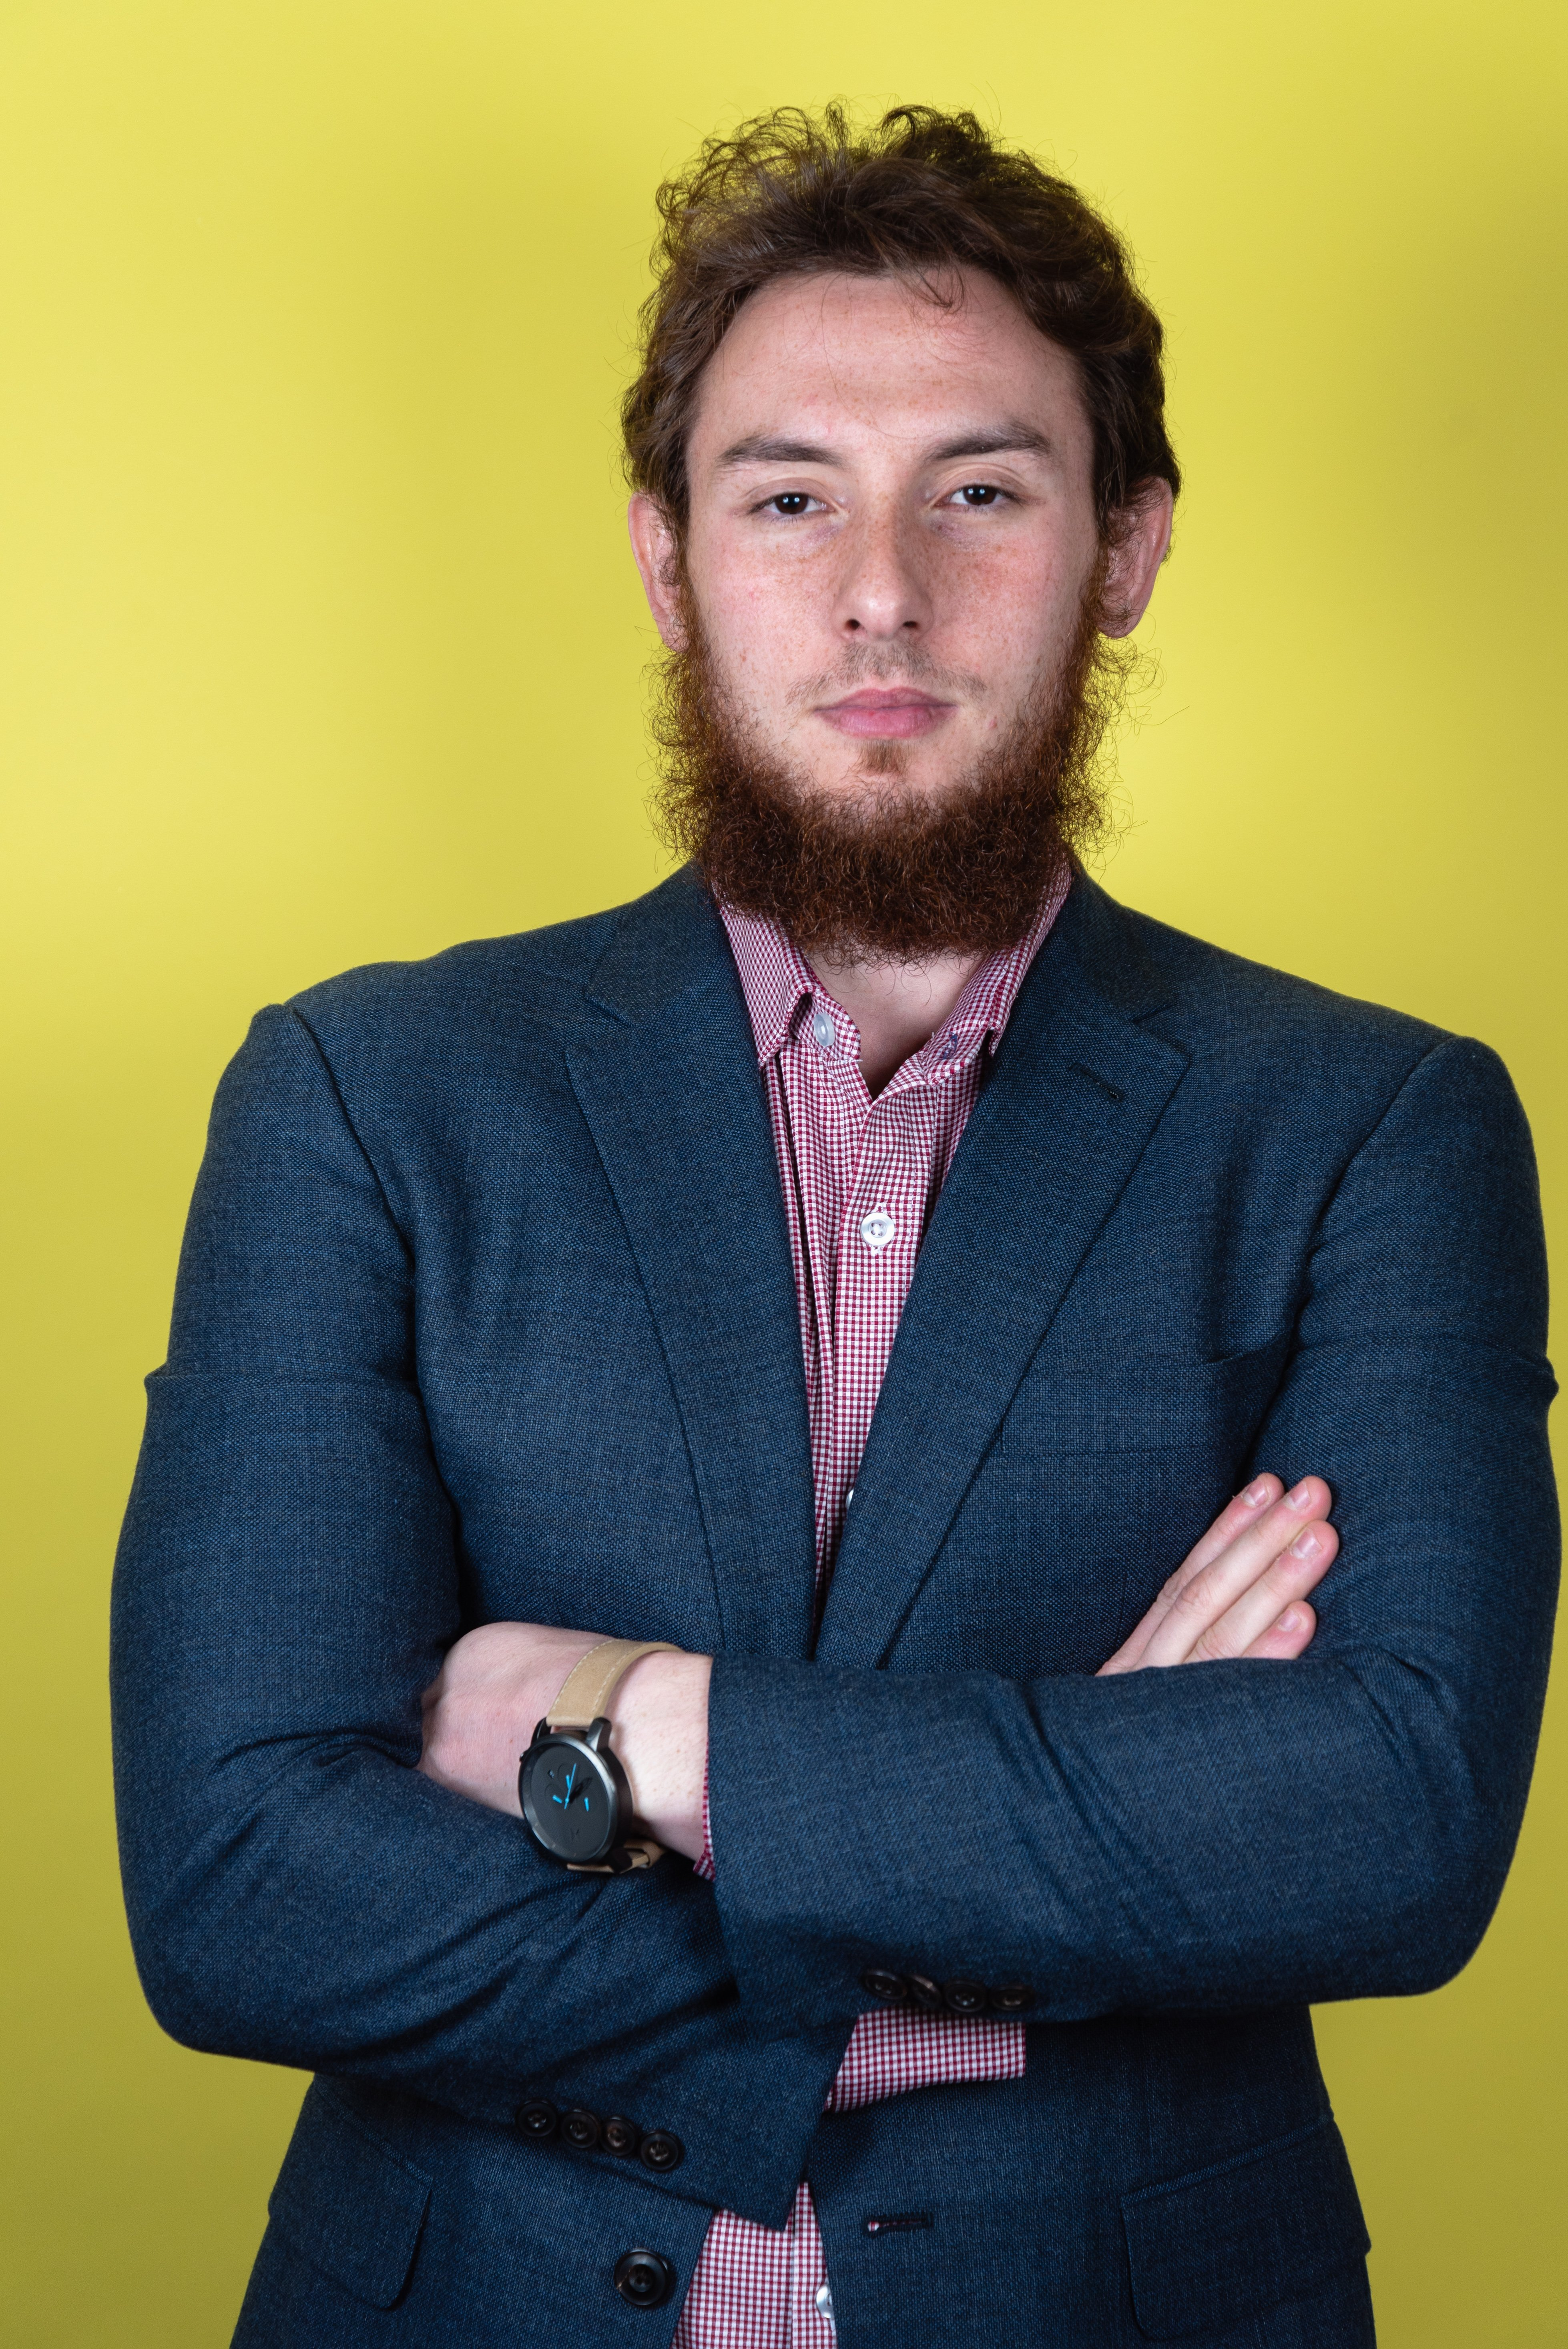 Business headshot of a client in a suit contrasted by a complementary tone of a yellow background.